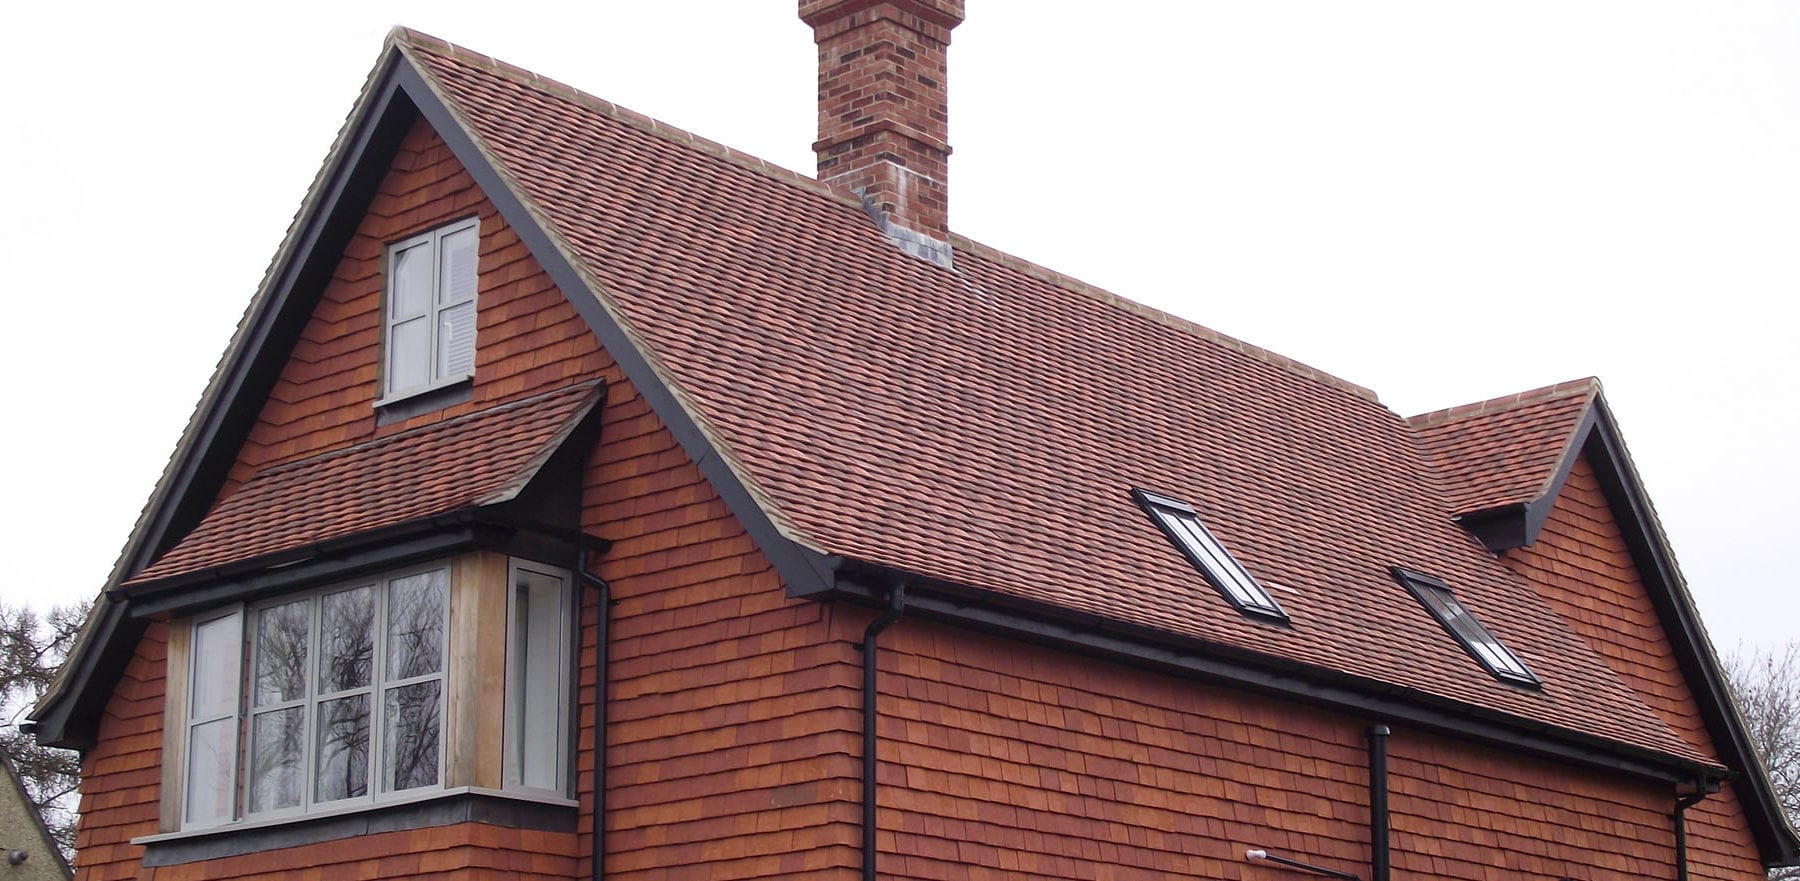 Lifestiles - Handcrafted Orange Clay Roof Tiles - Liss, England 7